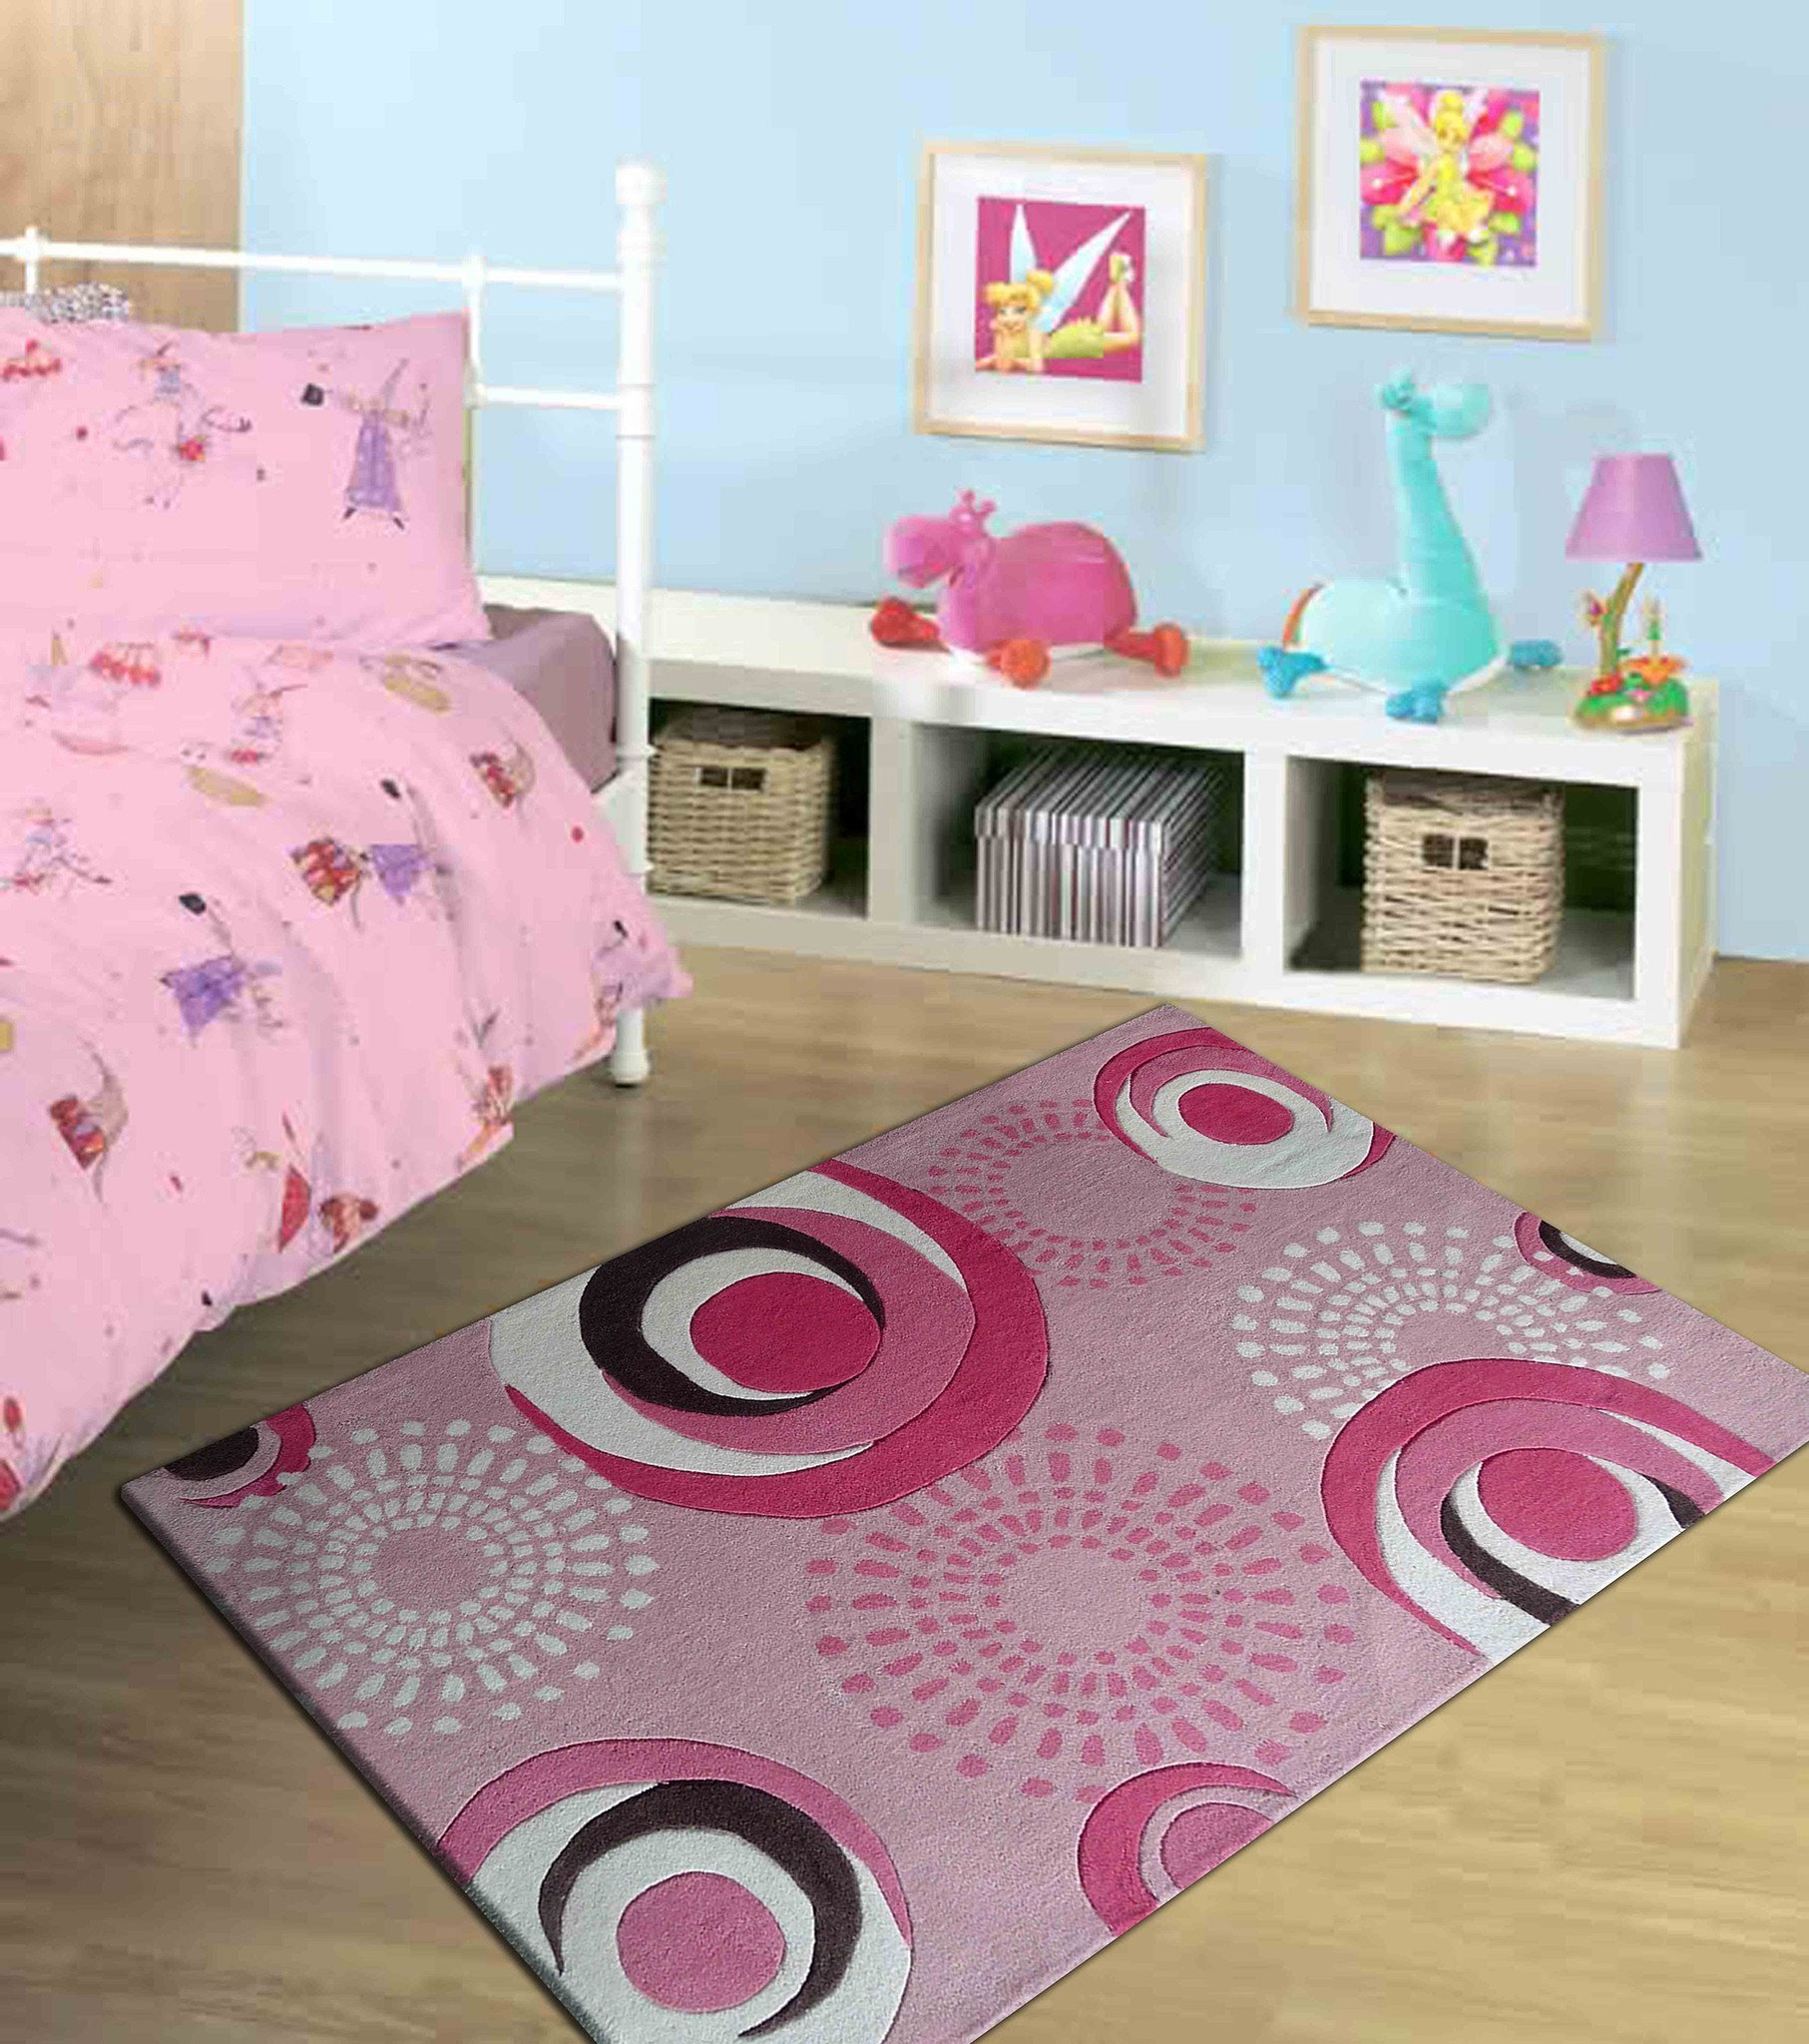 Best 4 X 6 Ft Pink Kids Bedroom Area Rug With Pink Circles Design Rug Addiction With Pictures